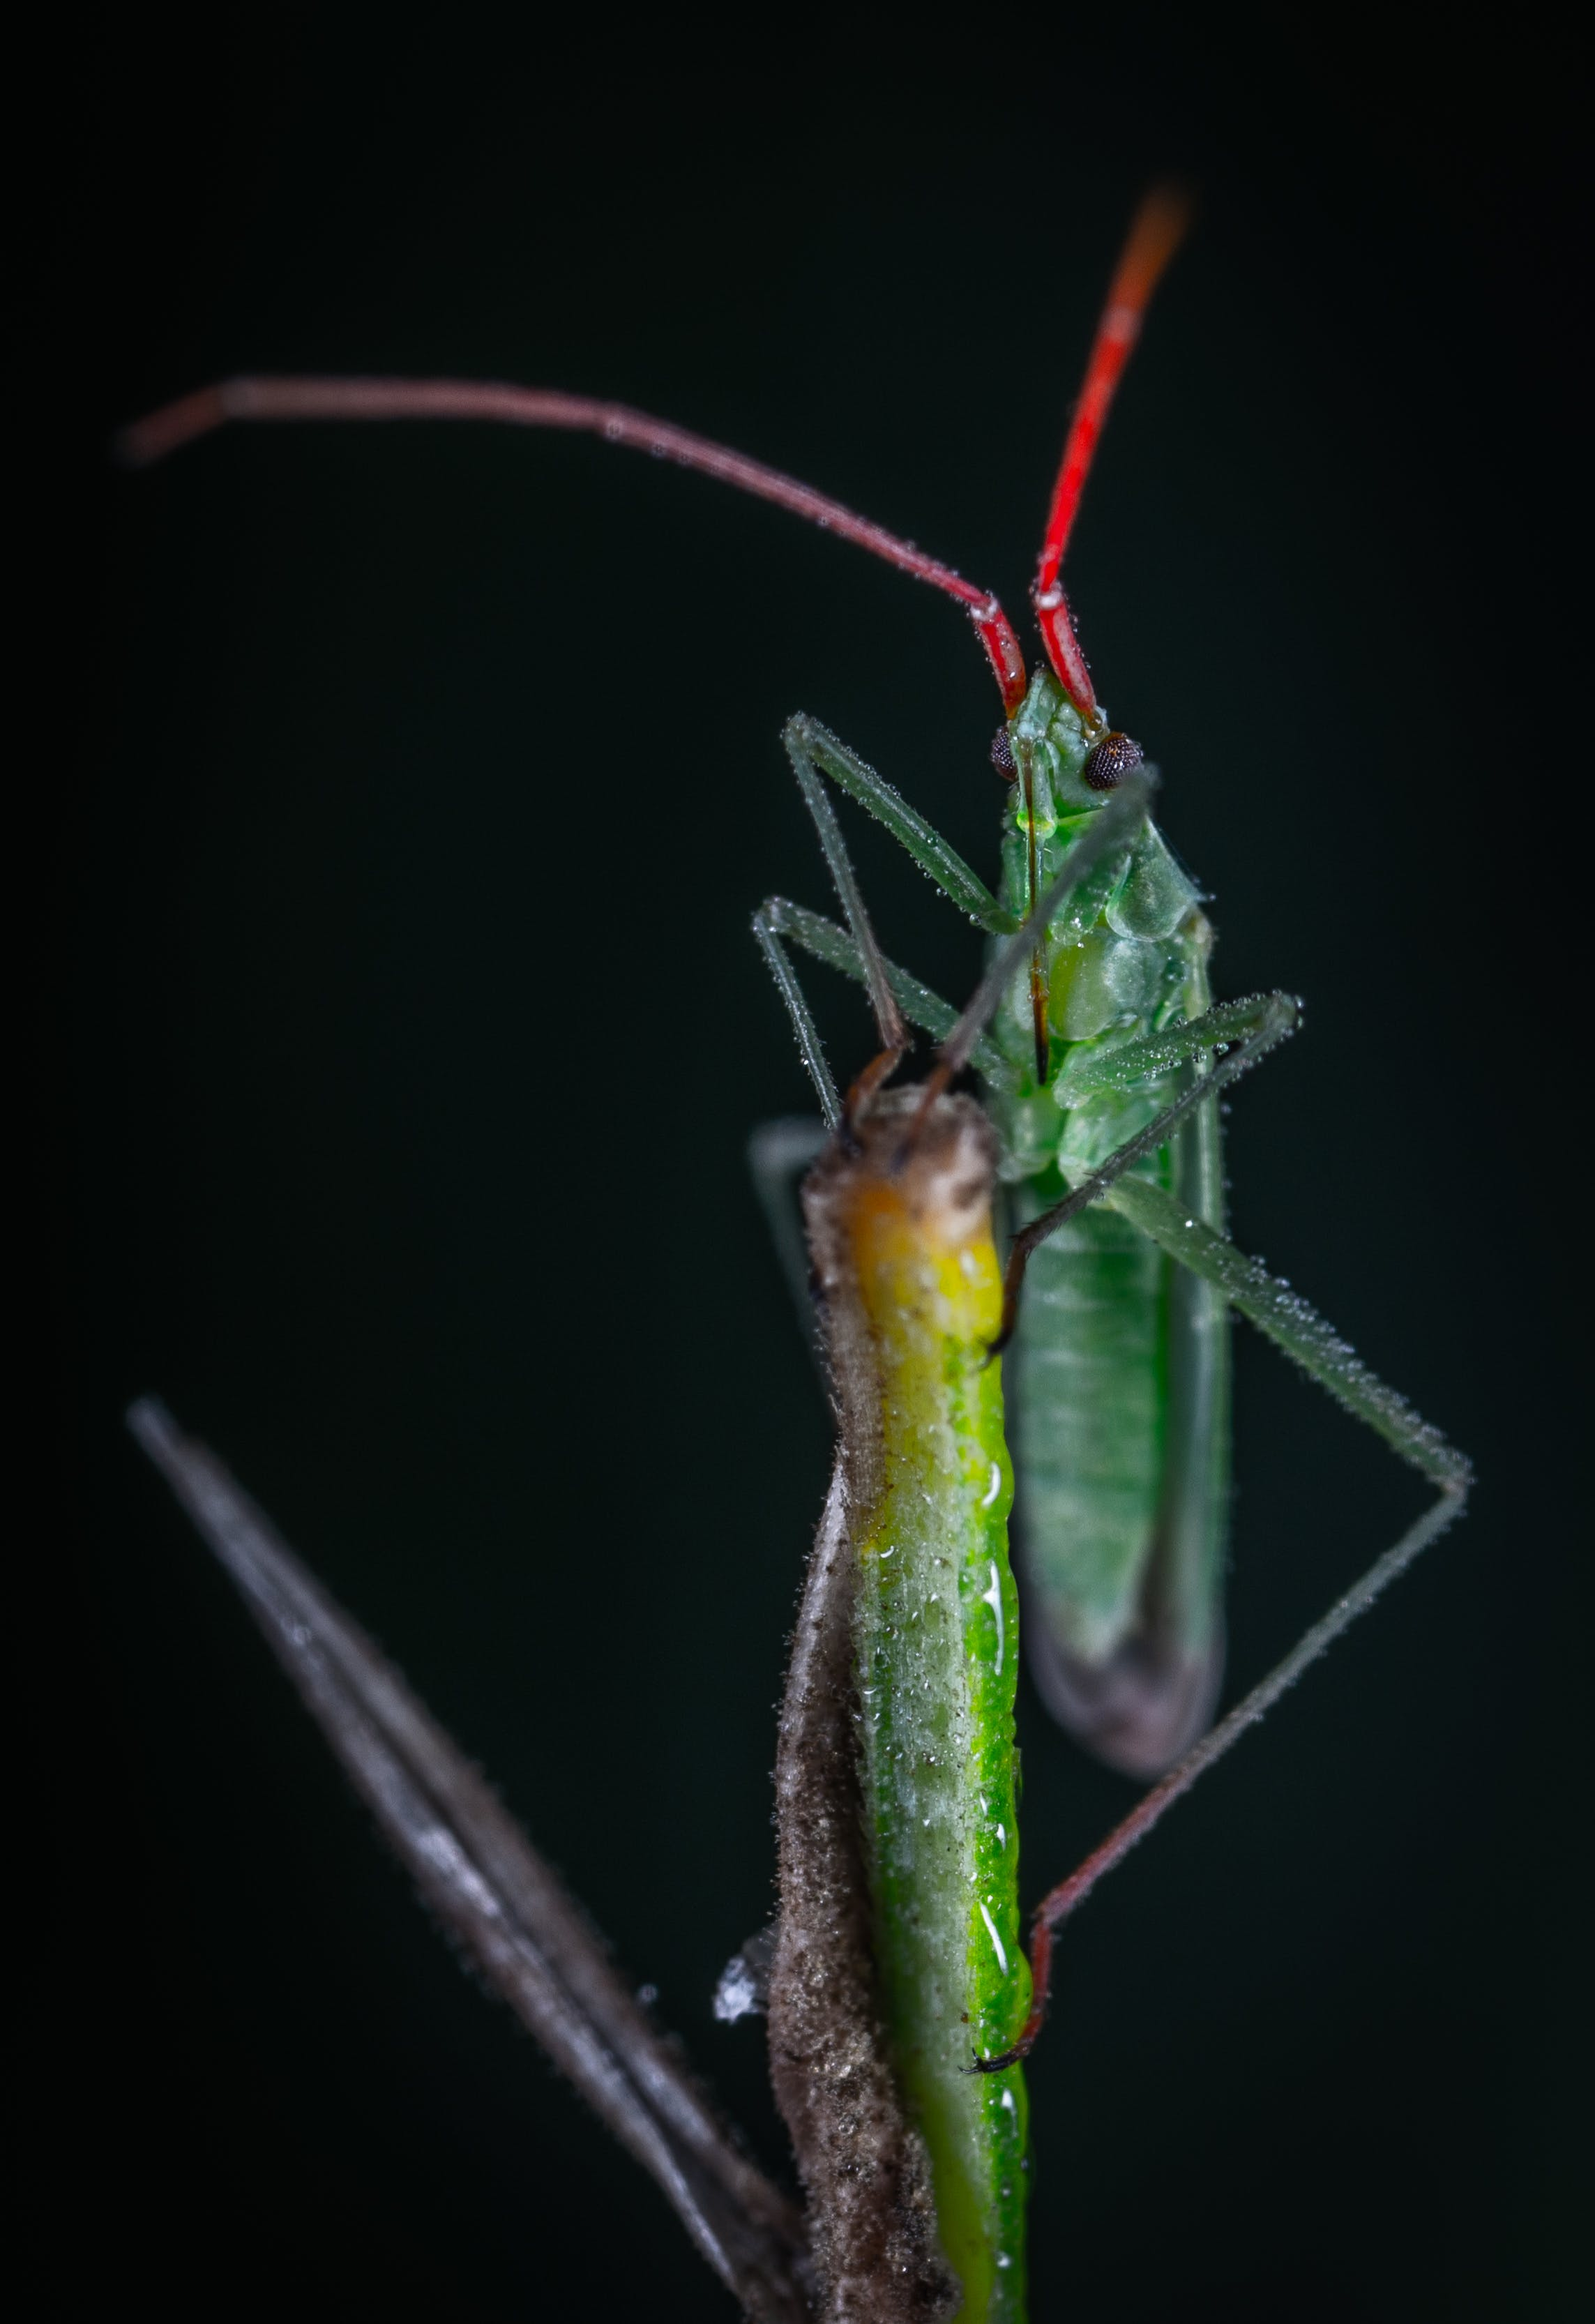 Green Bug in Close-up Photography